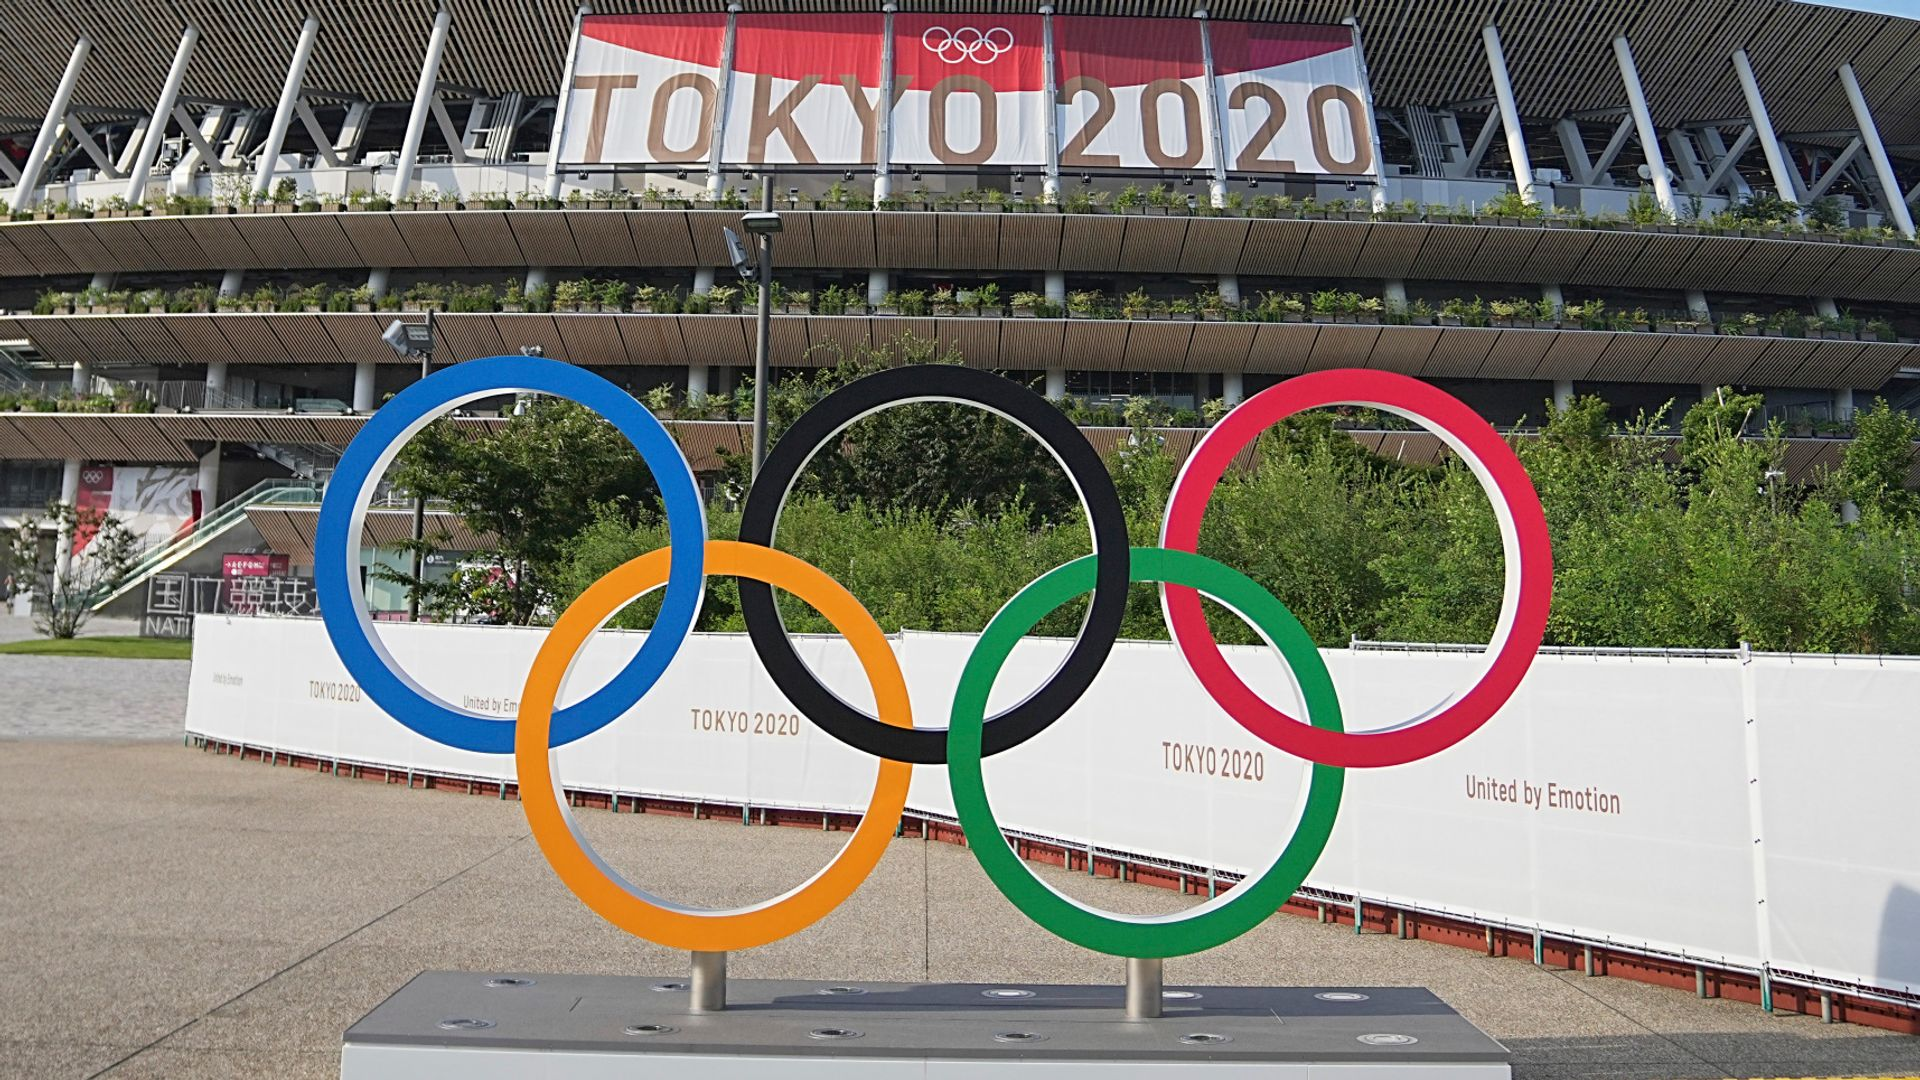 Olympics Notebook: Precautions, bubbles and action